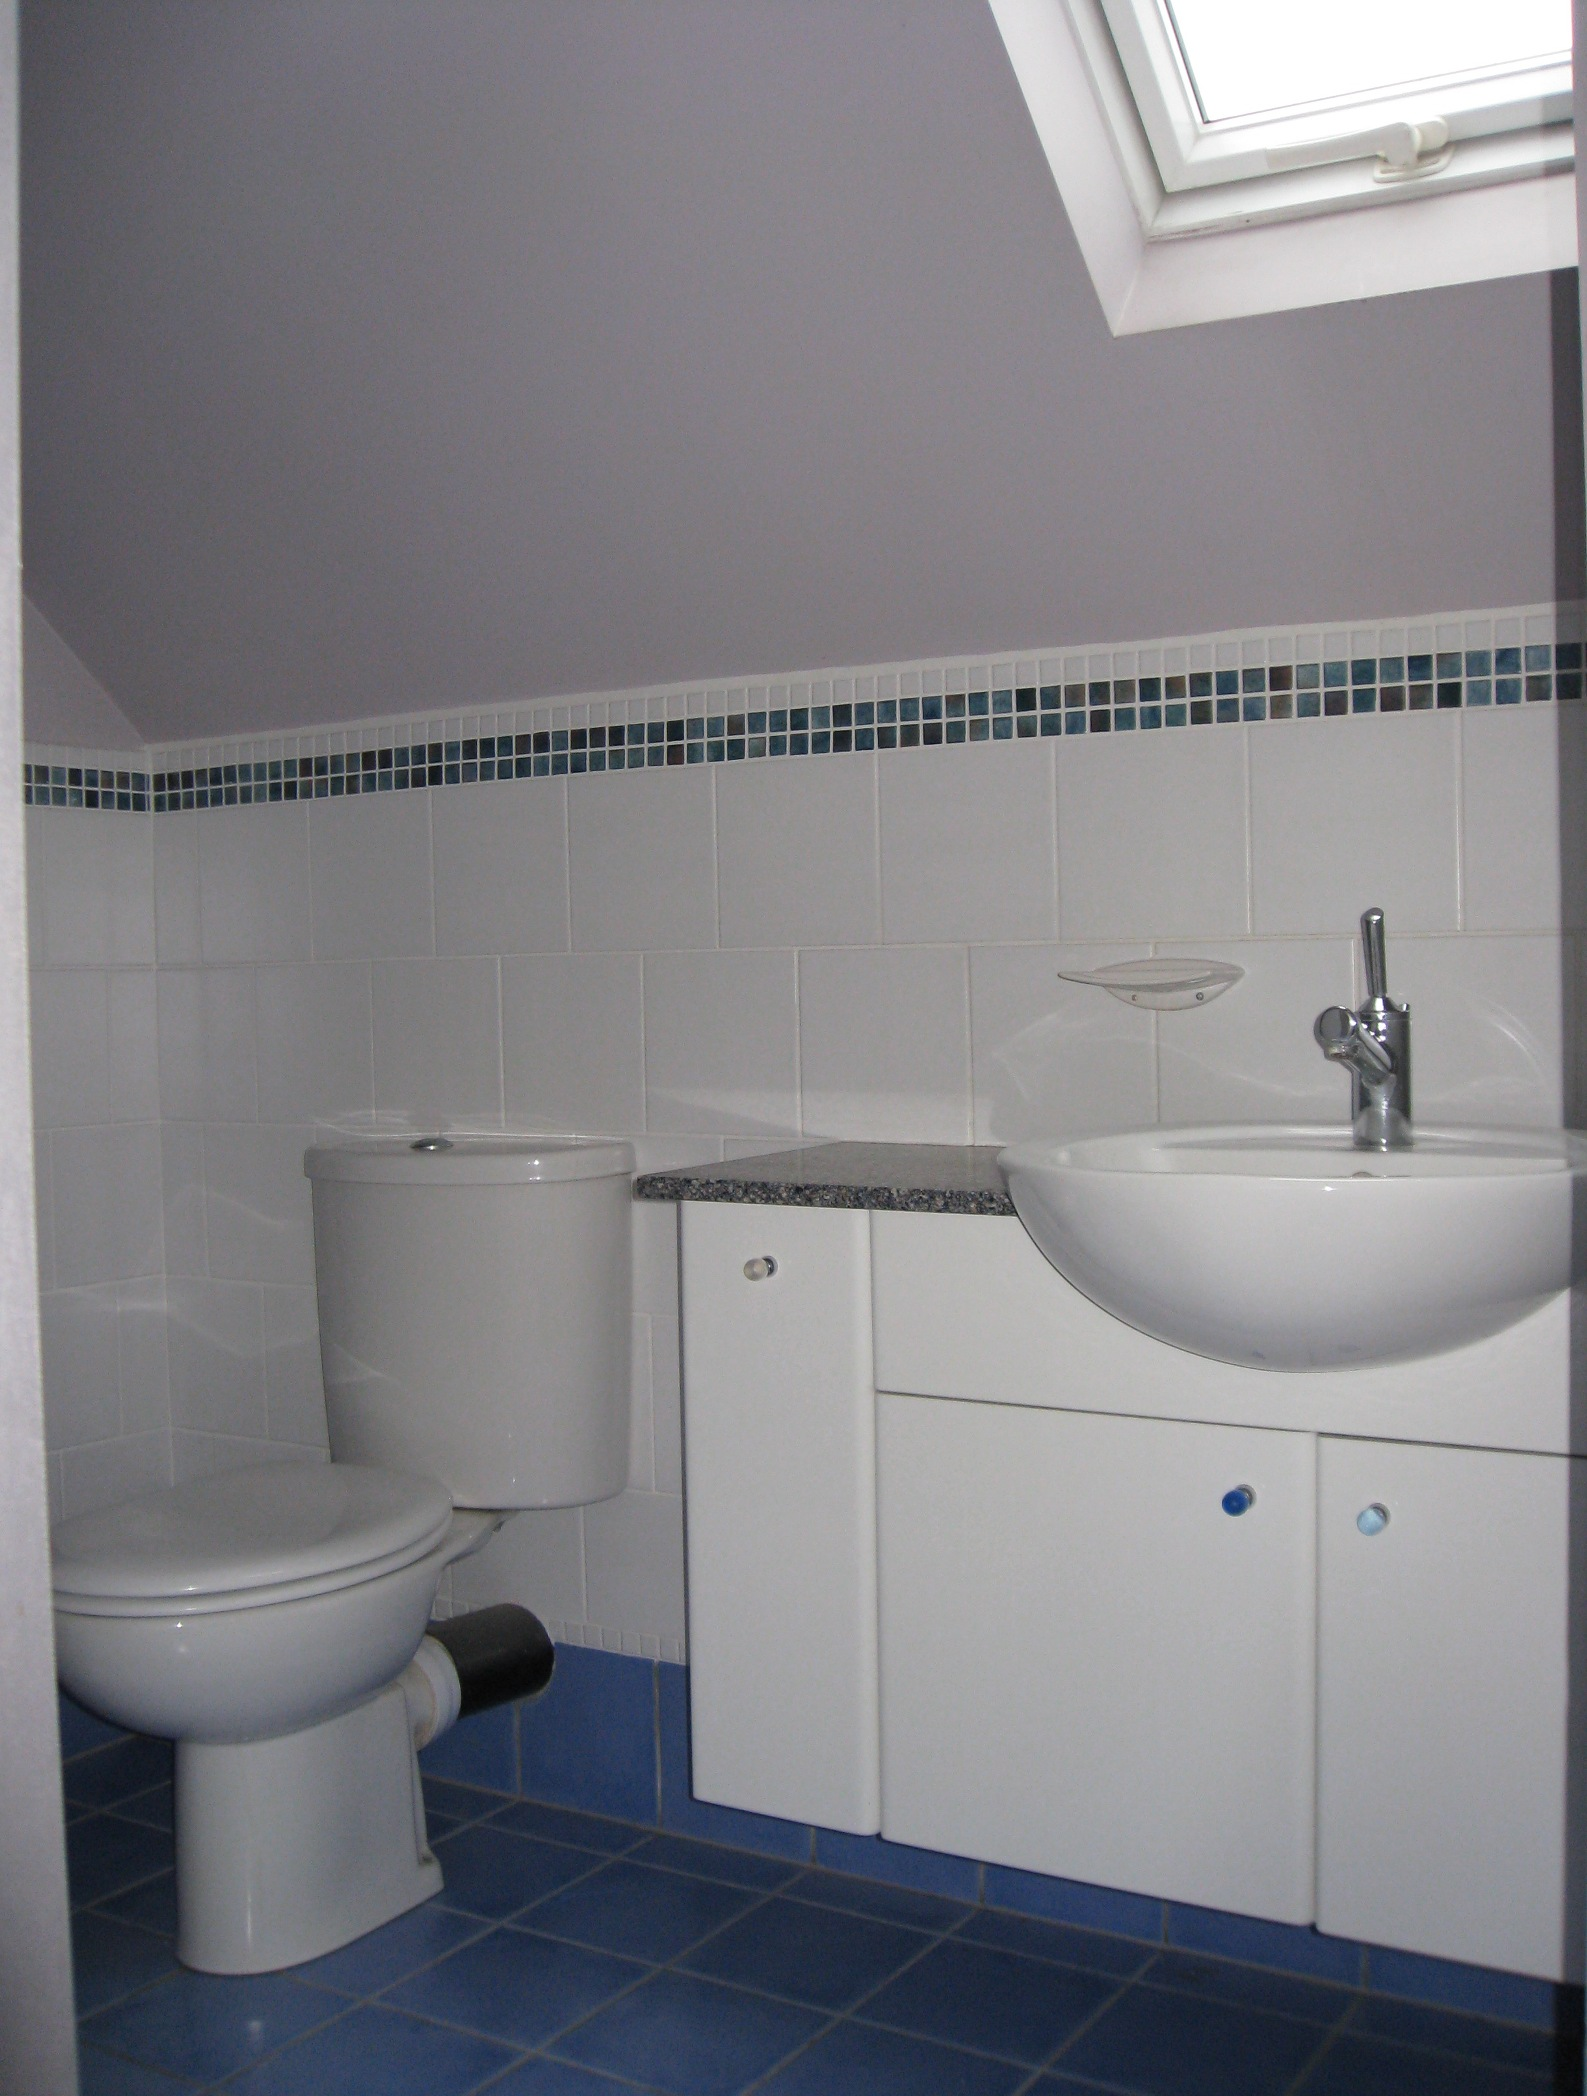 Lymm Ensuite Bathroom Transforming Homes For Over 30 Years Expert Builders Quality Workmanship